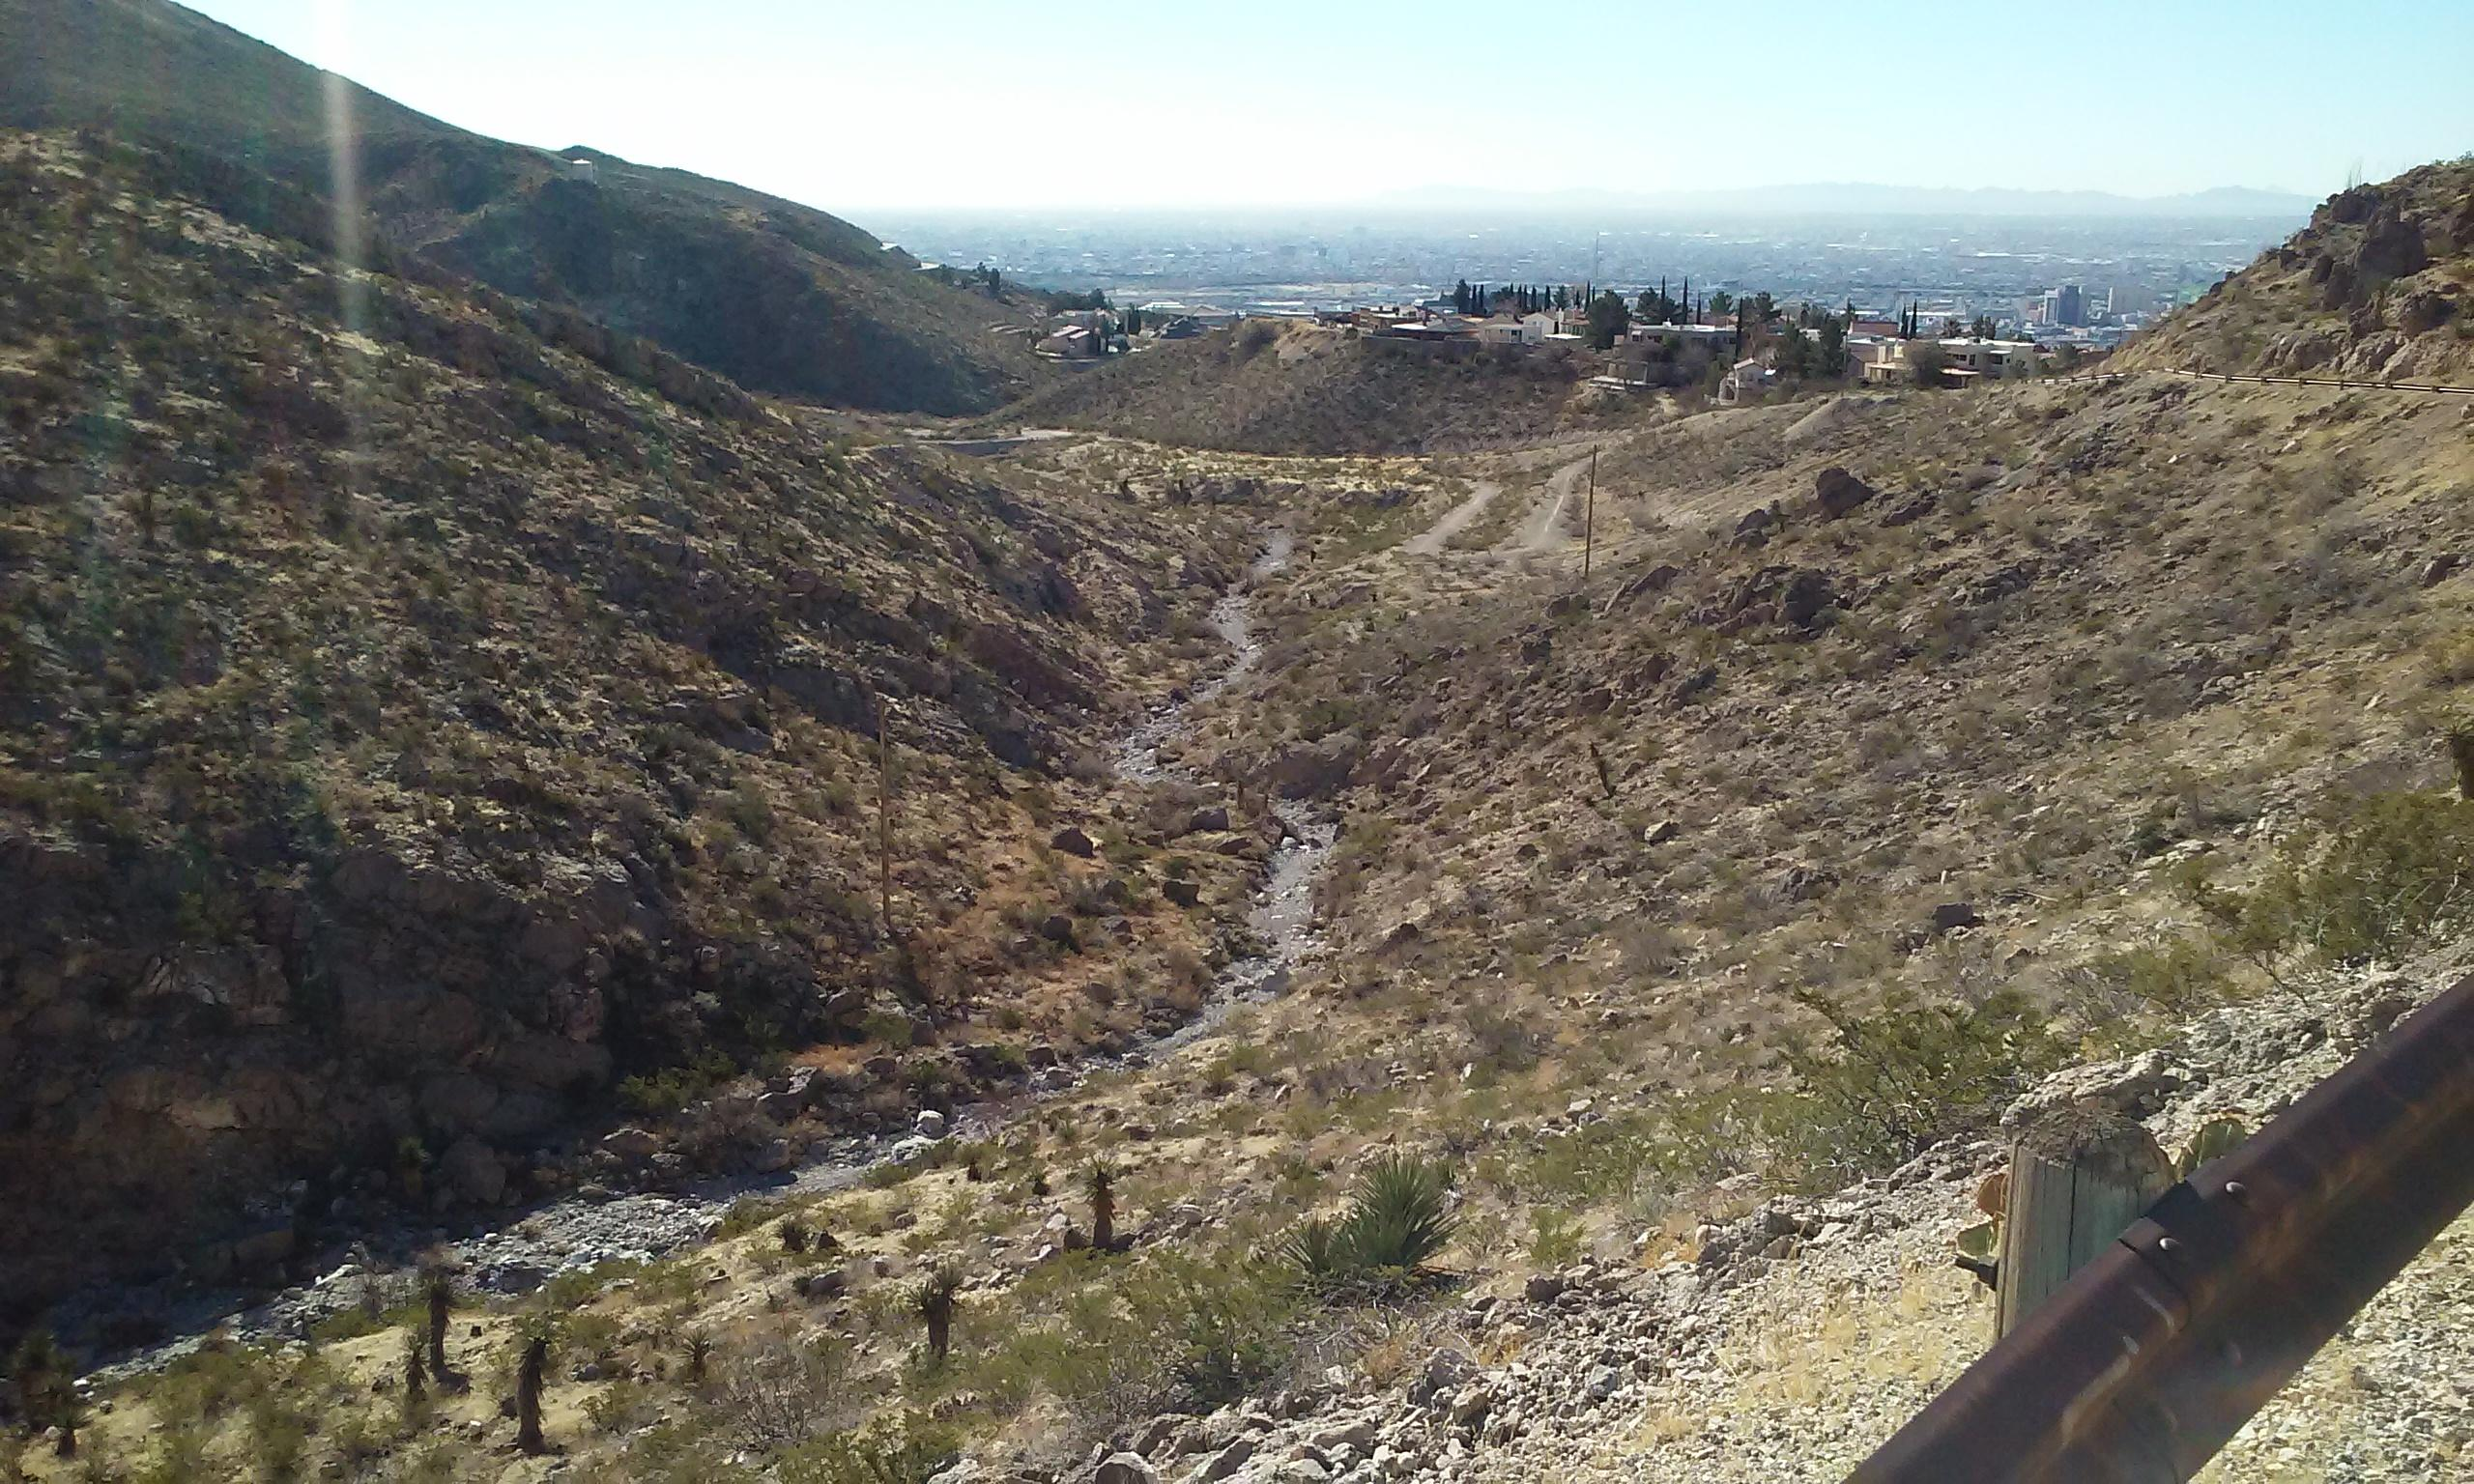 Palisades trail. View of downtown El Paso.